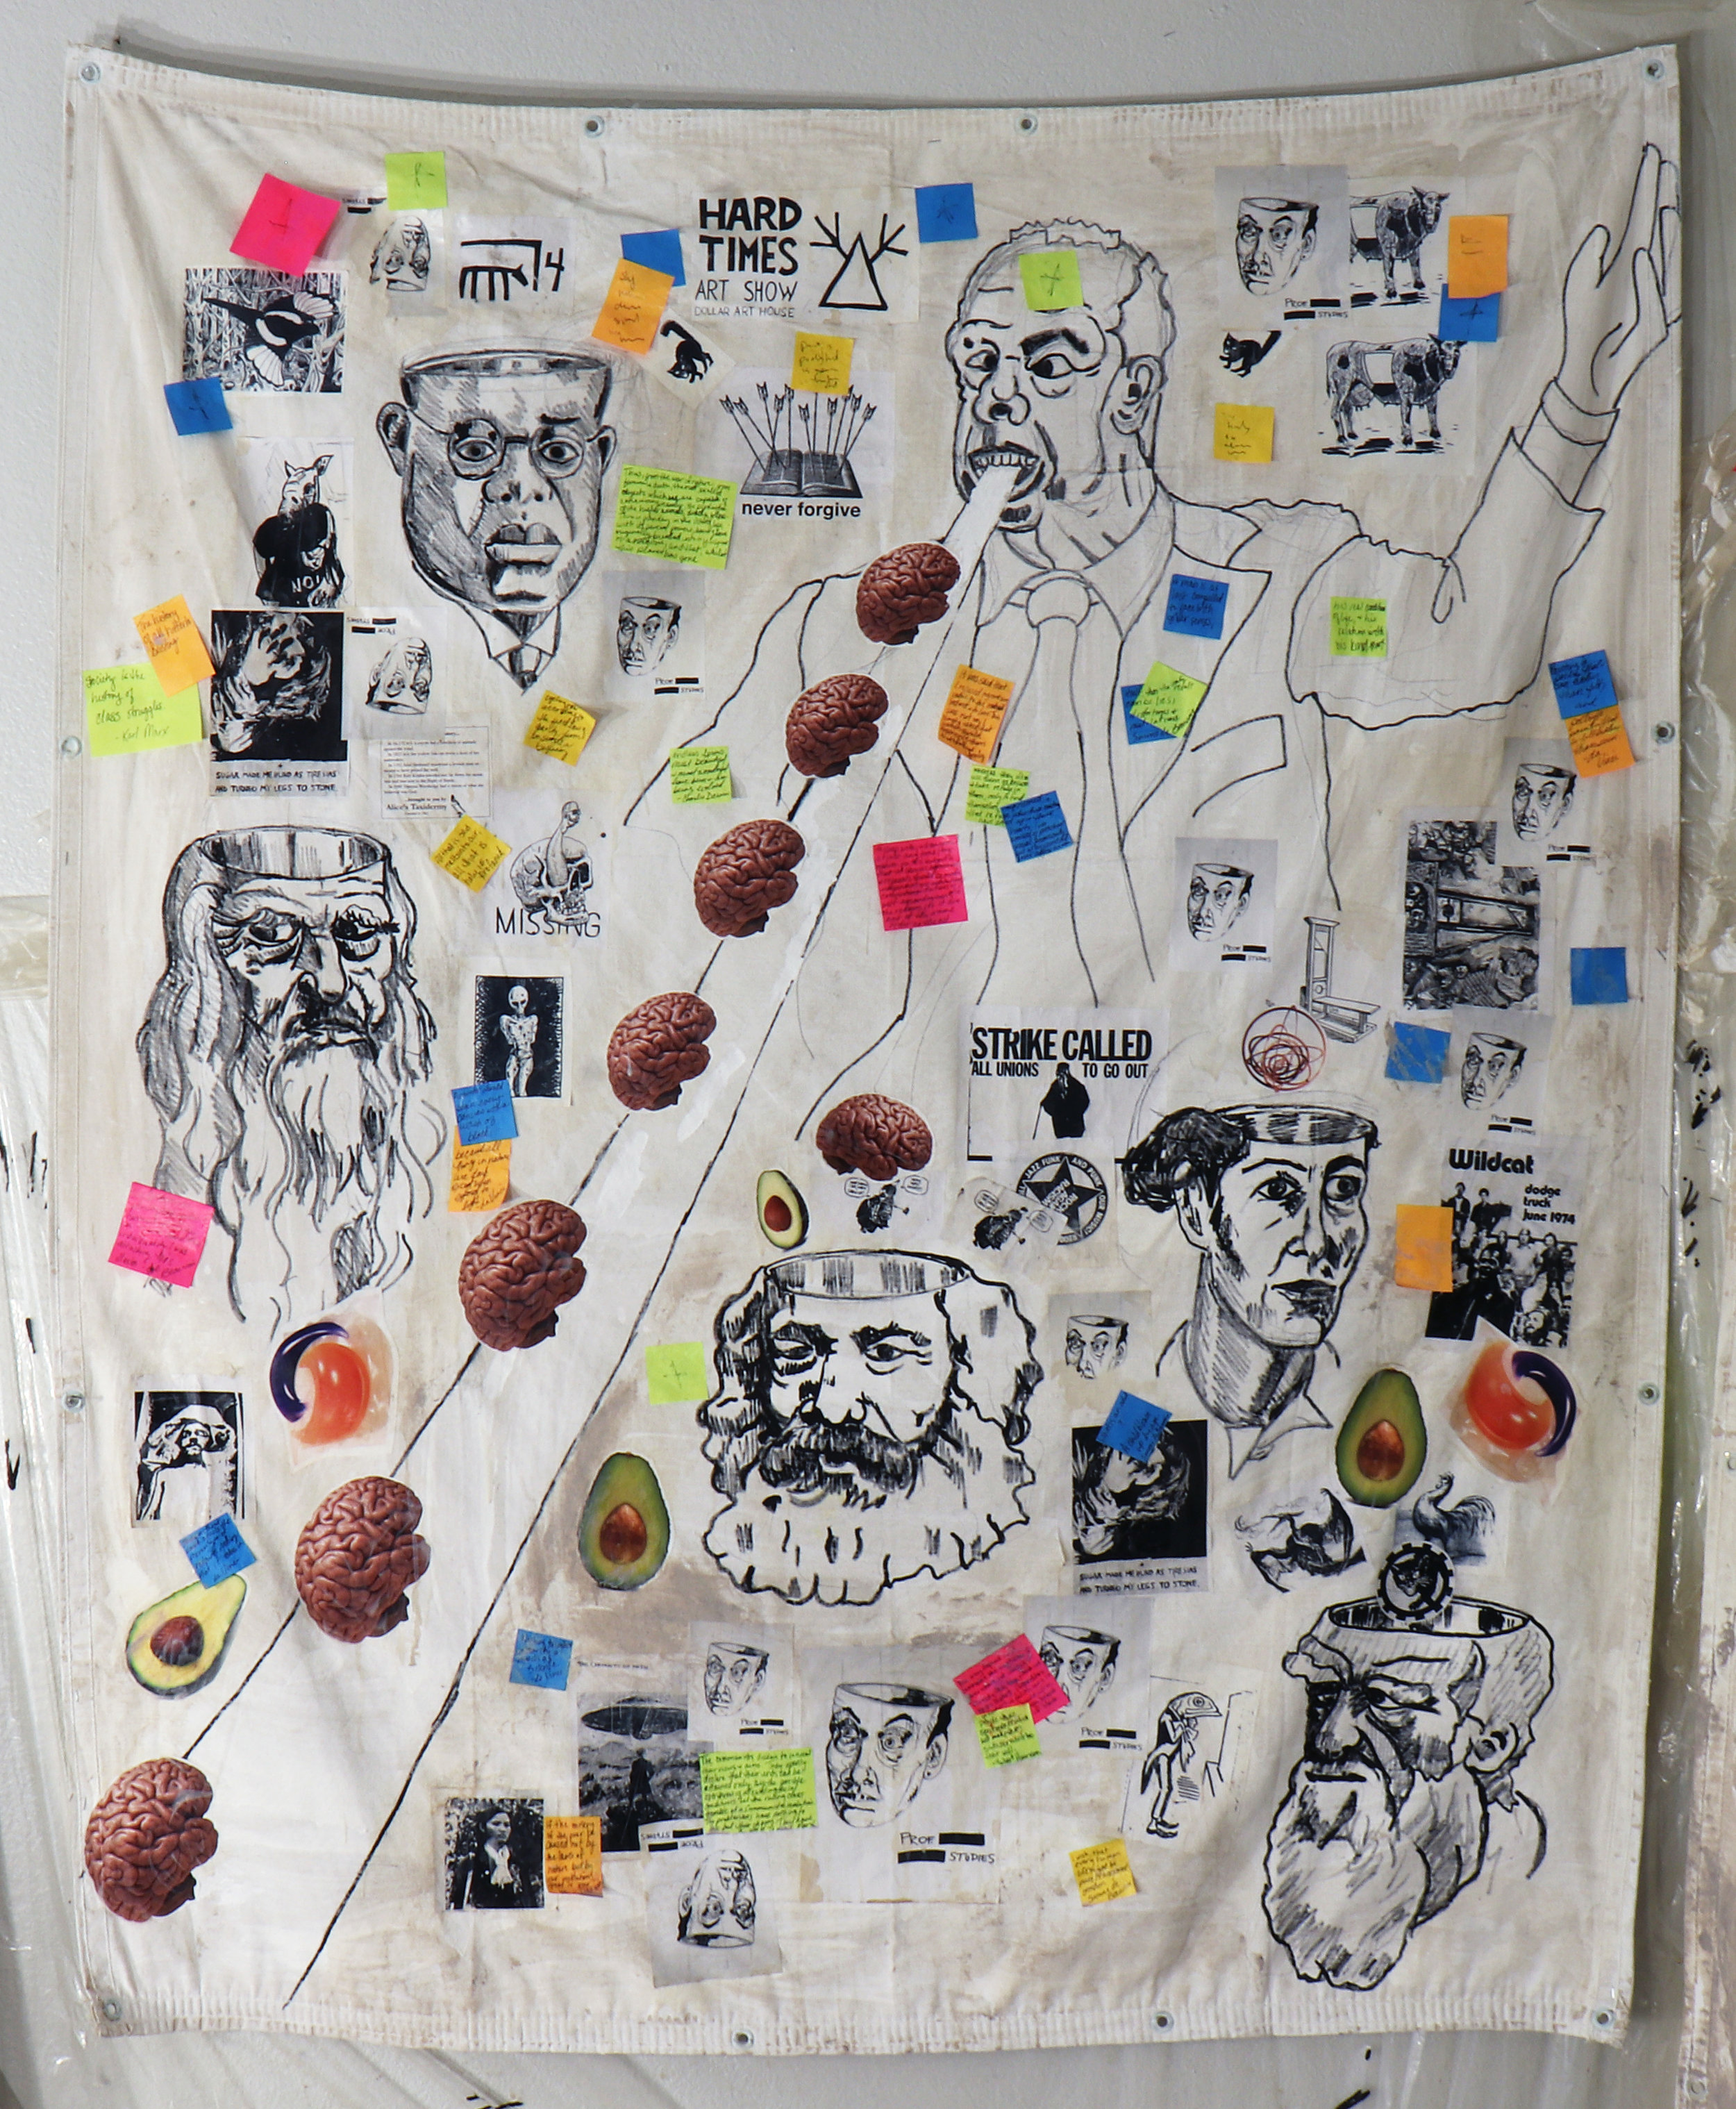 Erasure Chancellor/Carlo Montemagno Eats Brains. Acrylic, marker, Sharpie, photocopies, coffee, stickers,post-it notes, and mixed media on canvas tarp